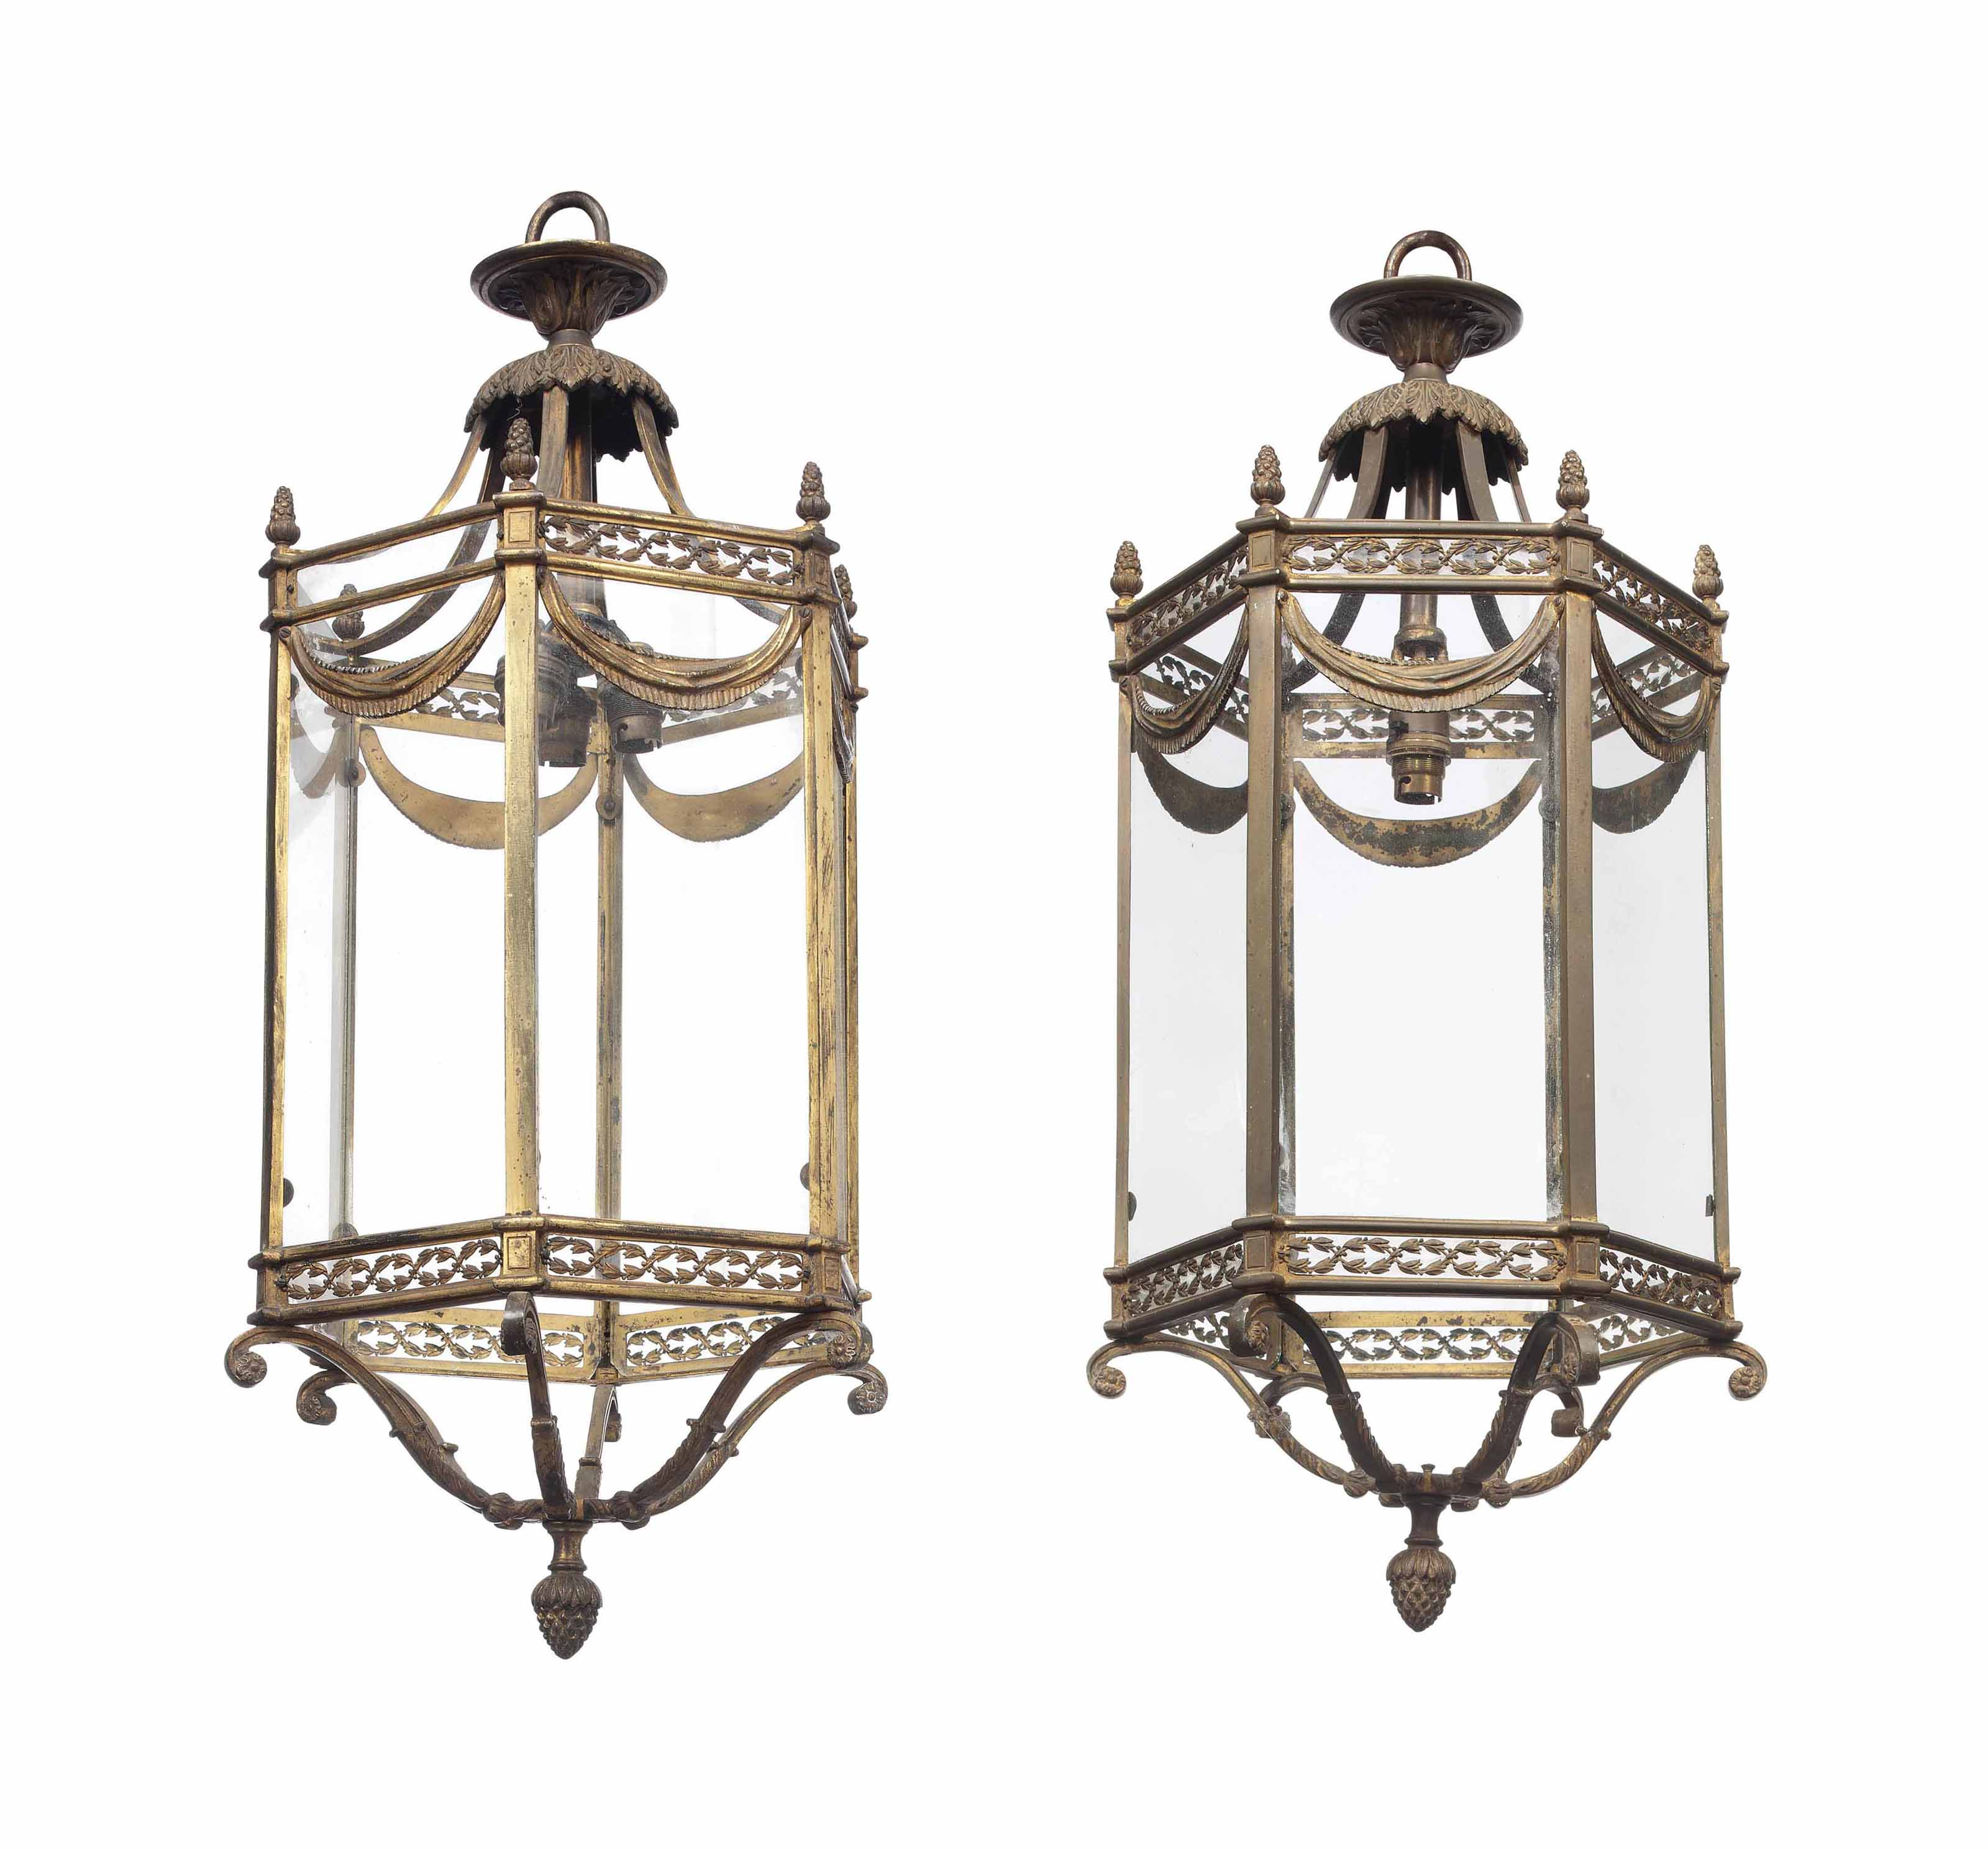 A PAIR OF EDWARDIAN LACQUERED